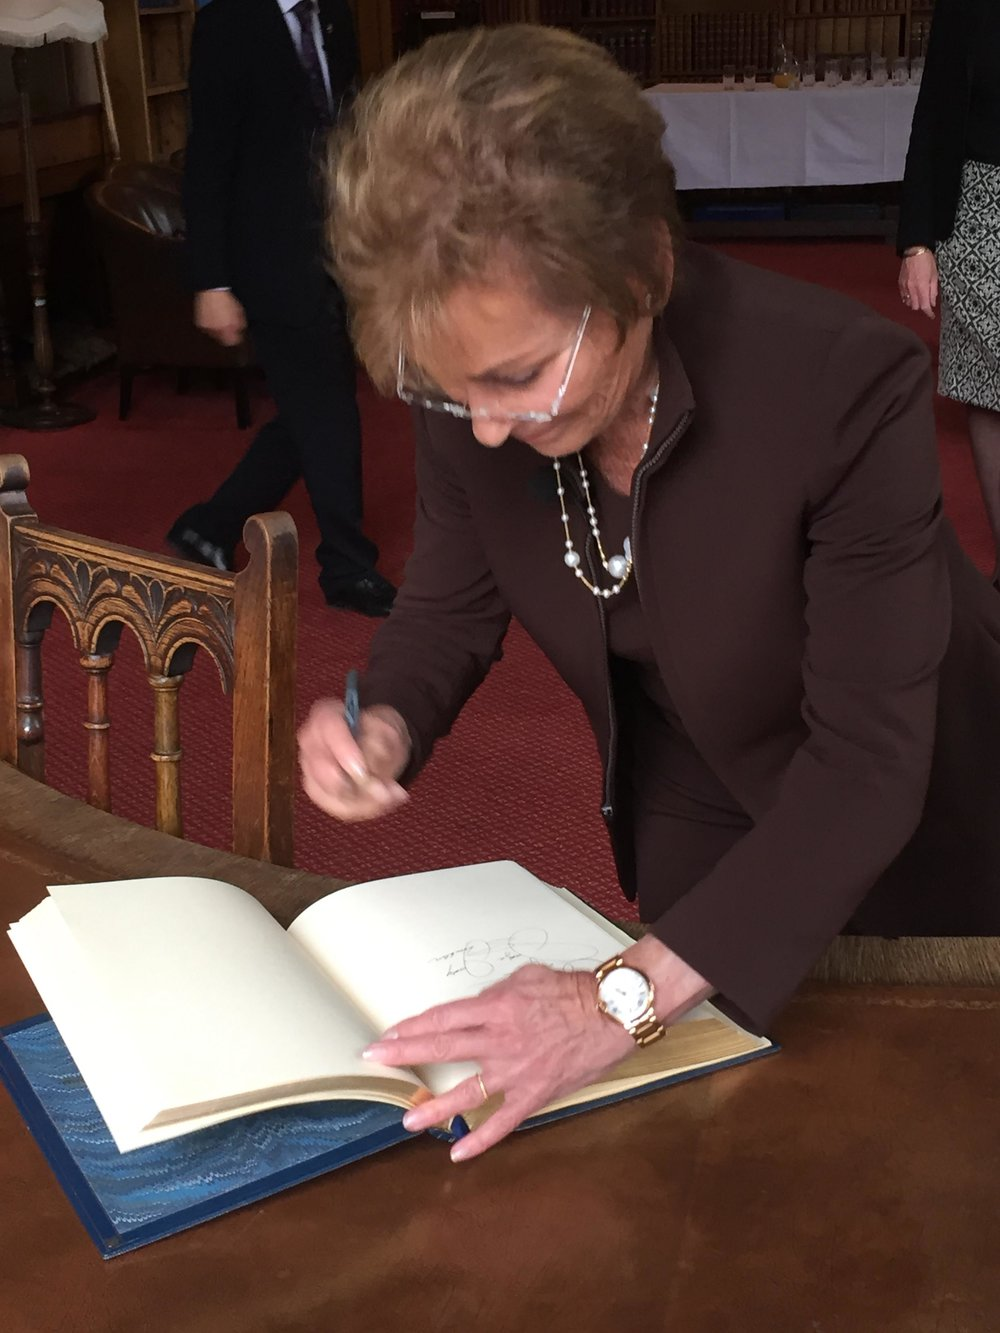 Judge Judy at the Oxford Union